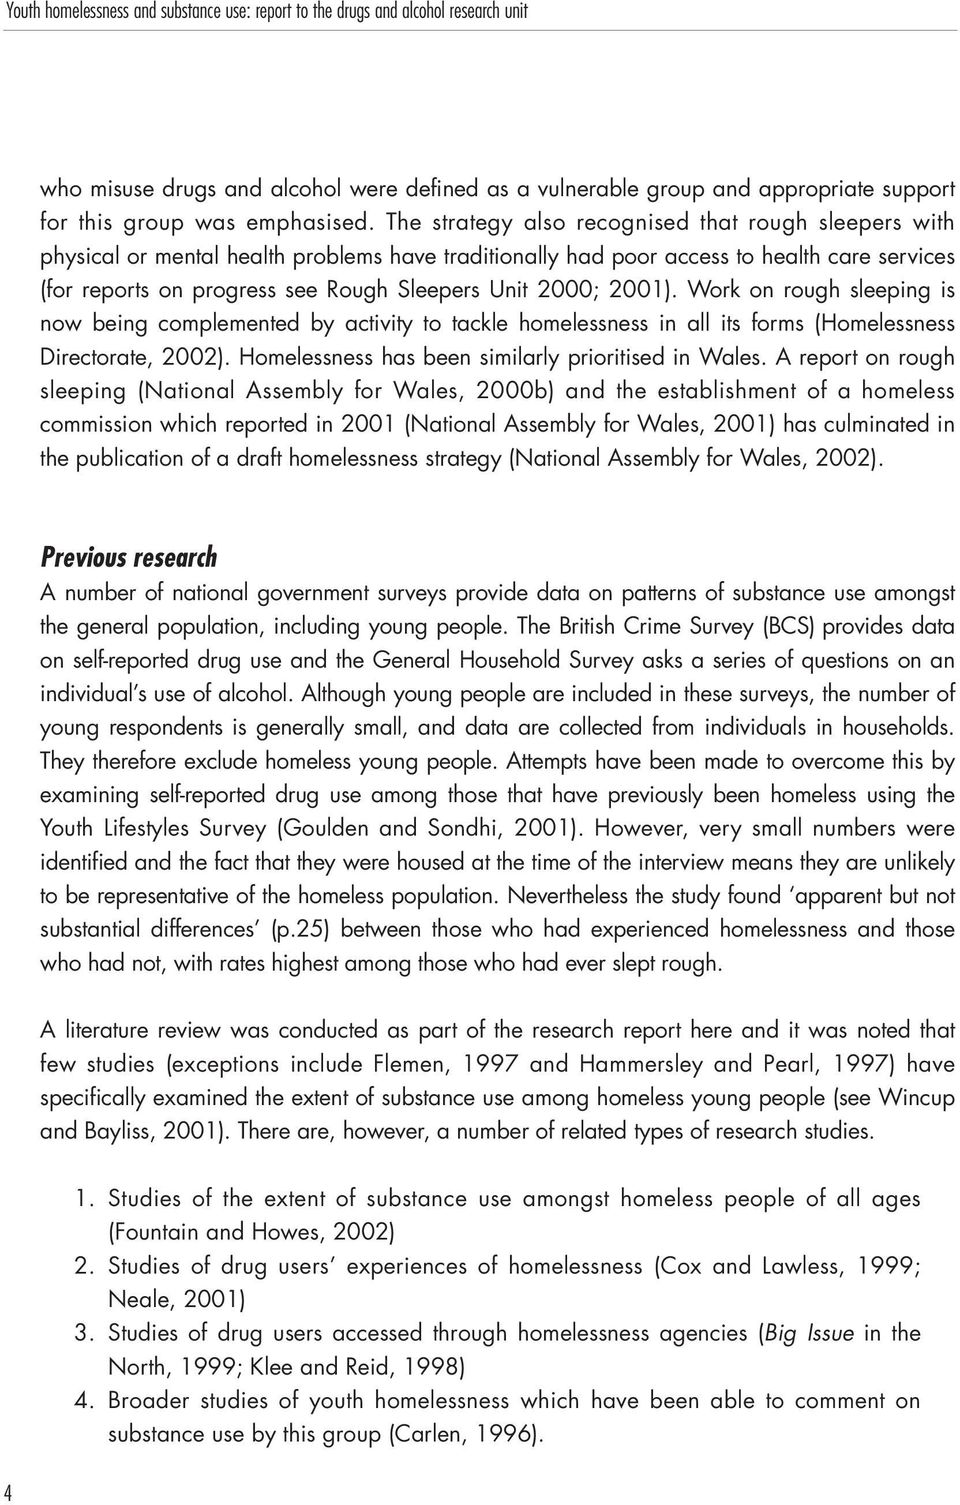 Technology Management And Society Essays On Global Warming